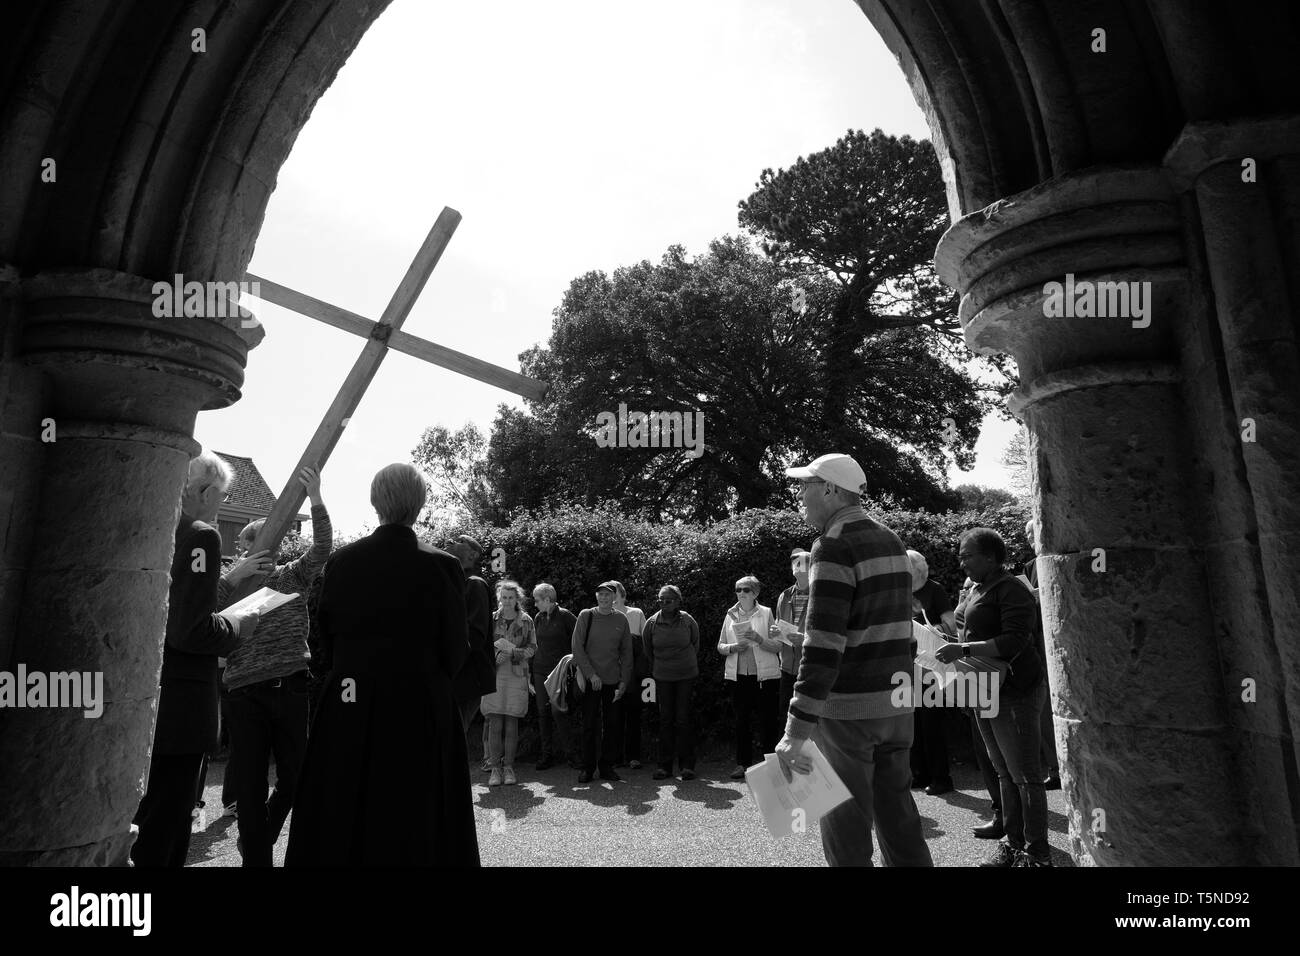 Procession of Witness religious occasion, Good Friday 2019, Shanklin, Isle of Wight, UK. - Stock Image